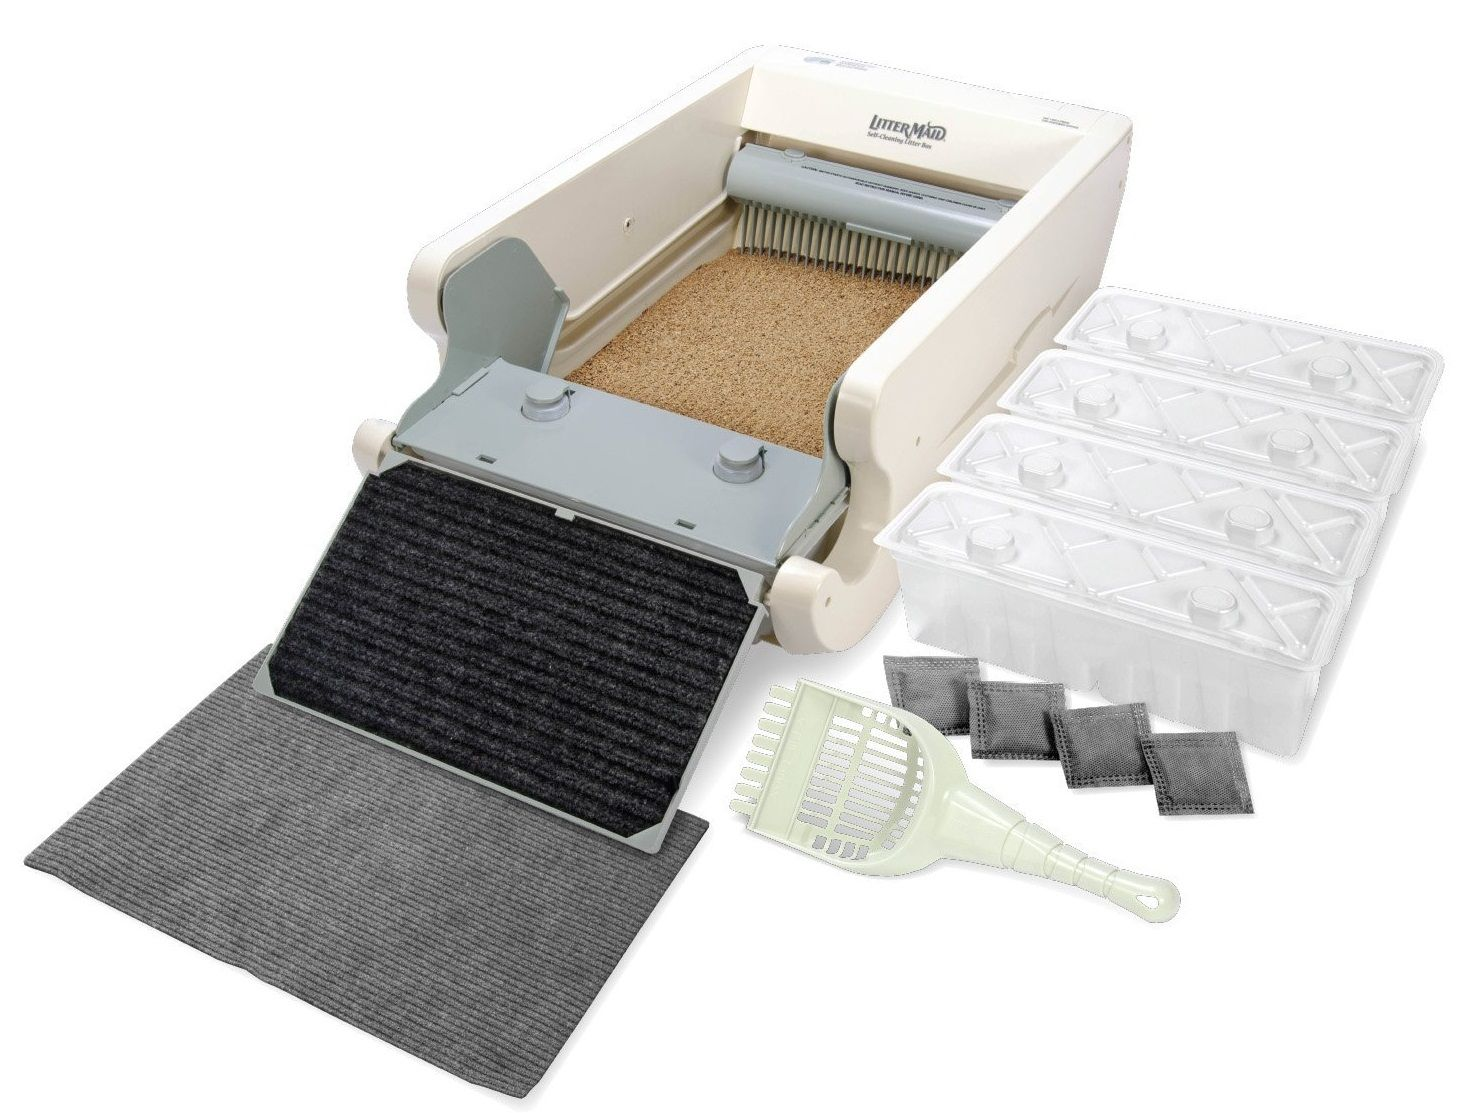 Littermaid Lm680c Automatic Self Cleaning Classic Litter Box Review Self Cleaning Litter Box